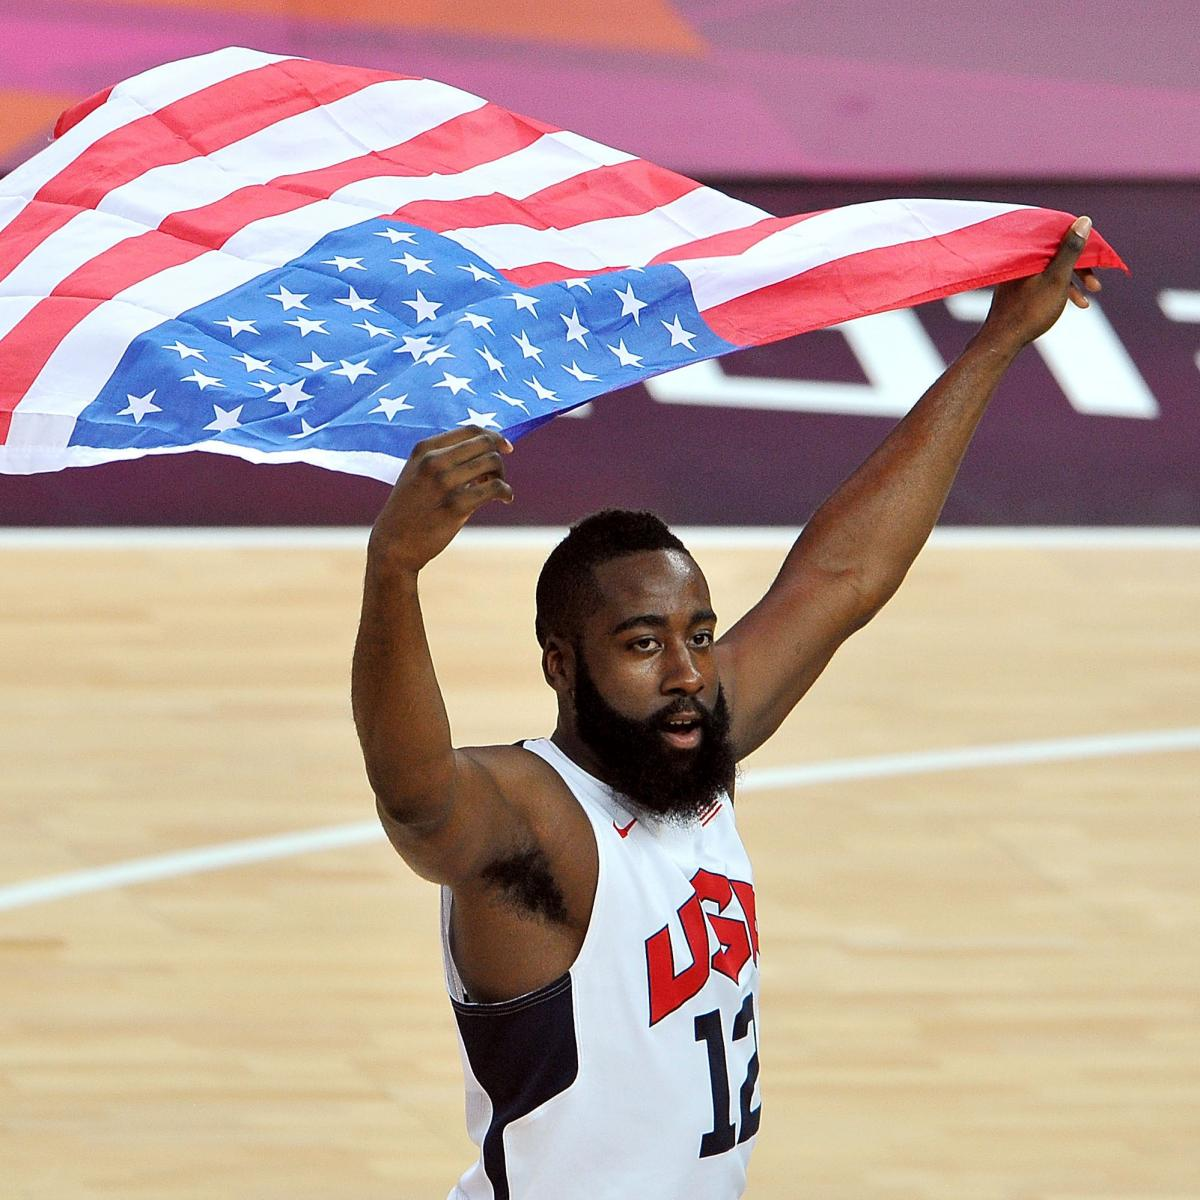 James Harden Quadruple Team: James Harden Will Not Compete For Team USA At 2016 Rio